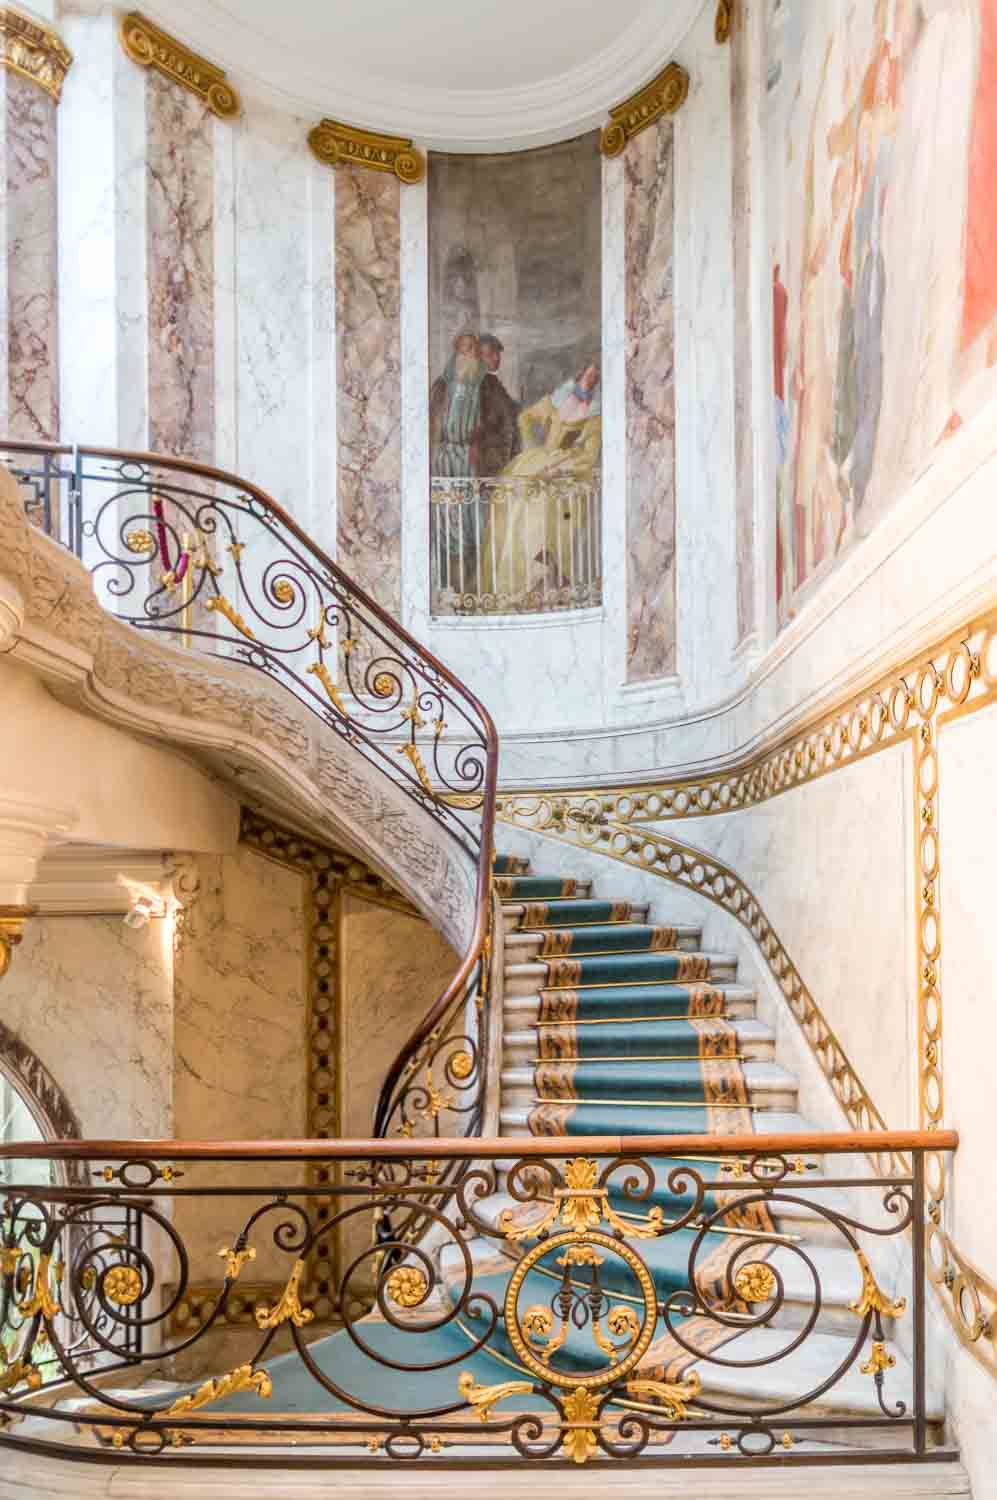 jacquemart-andrestaircase.jpg